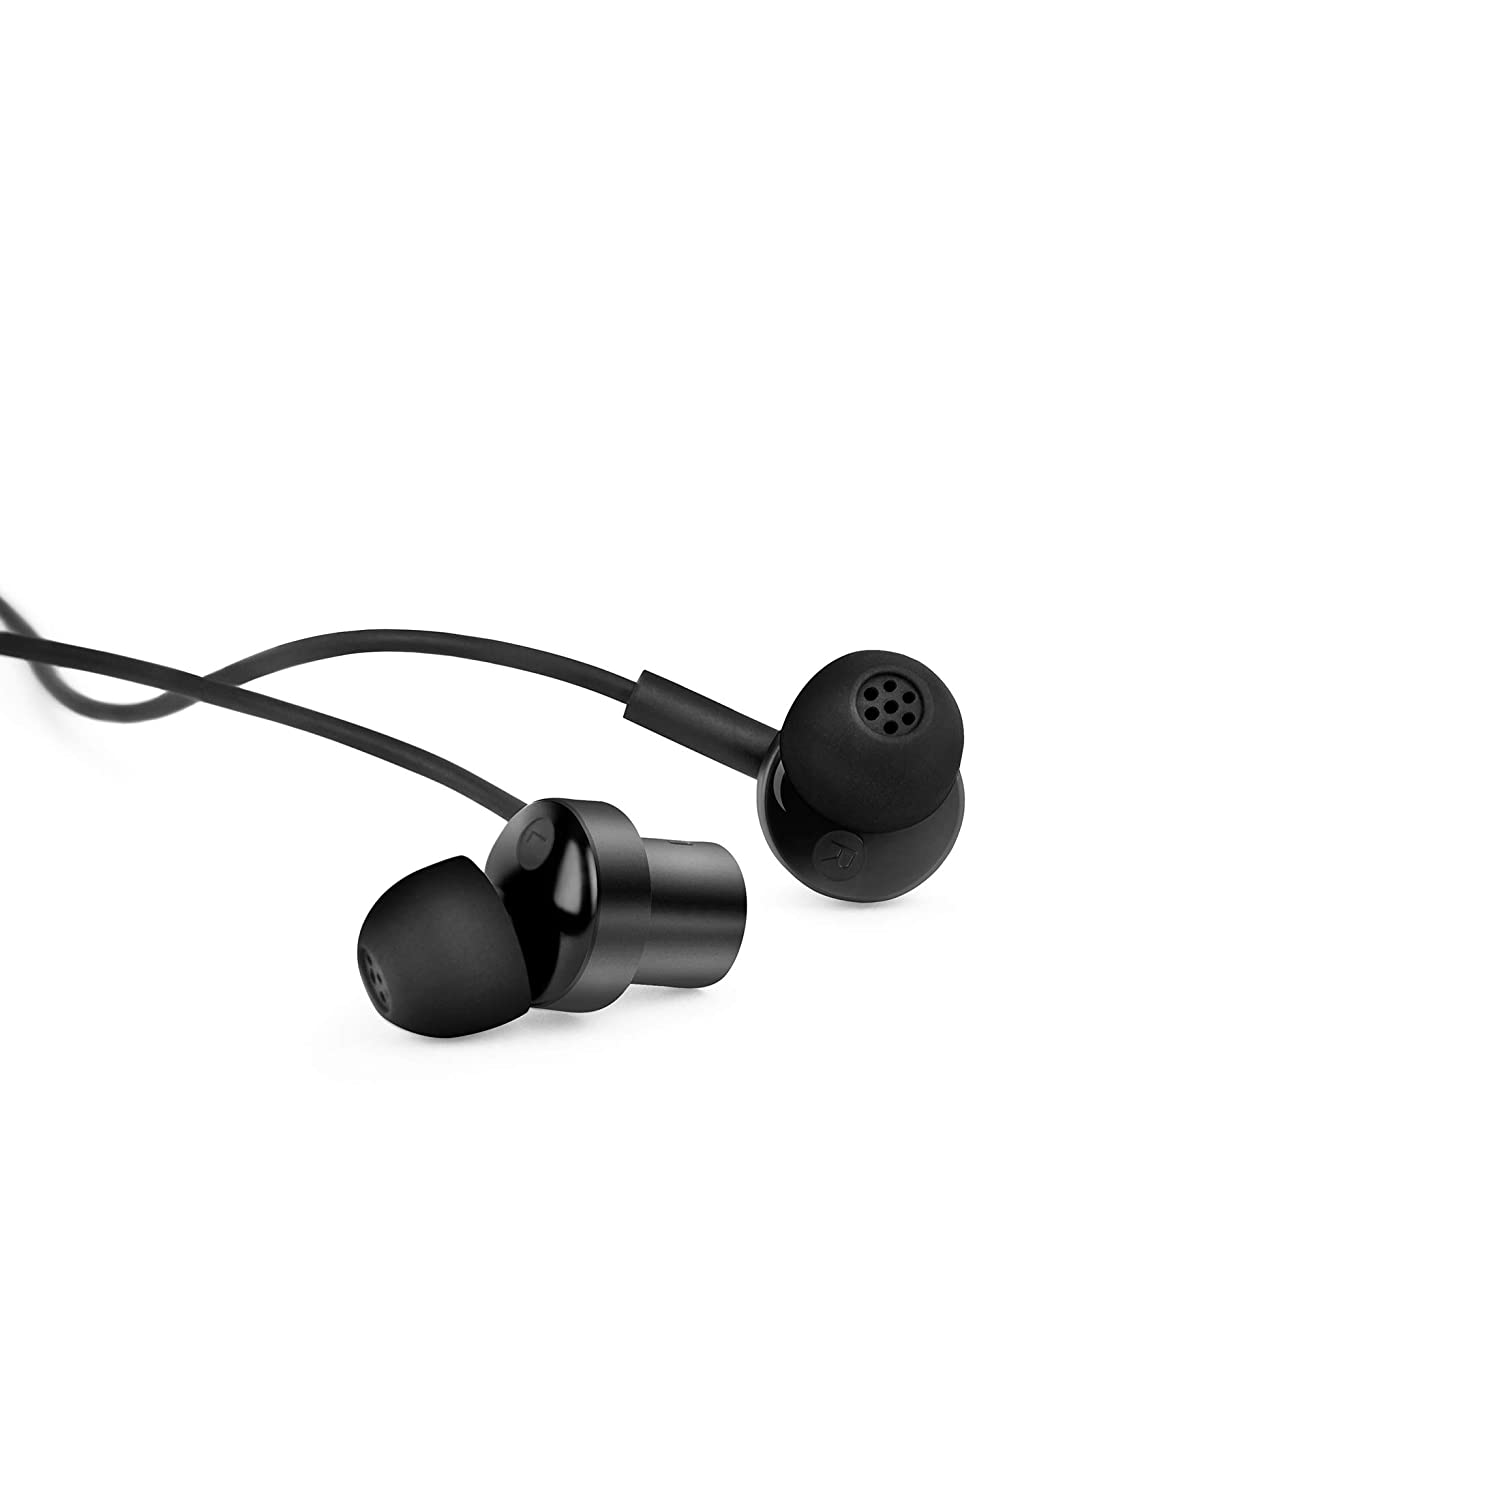 Mi Dual Driver in-Ear Earphones with Mic, Crisp Vocals & Rich Bass, Tangle-Free Cable, One Touch Voice Assistant (Black)